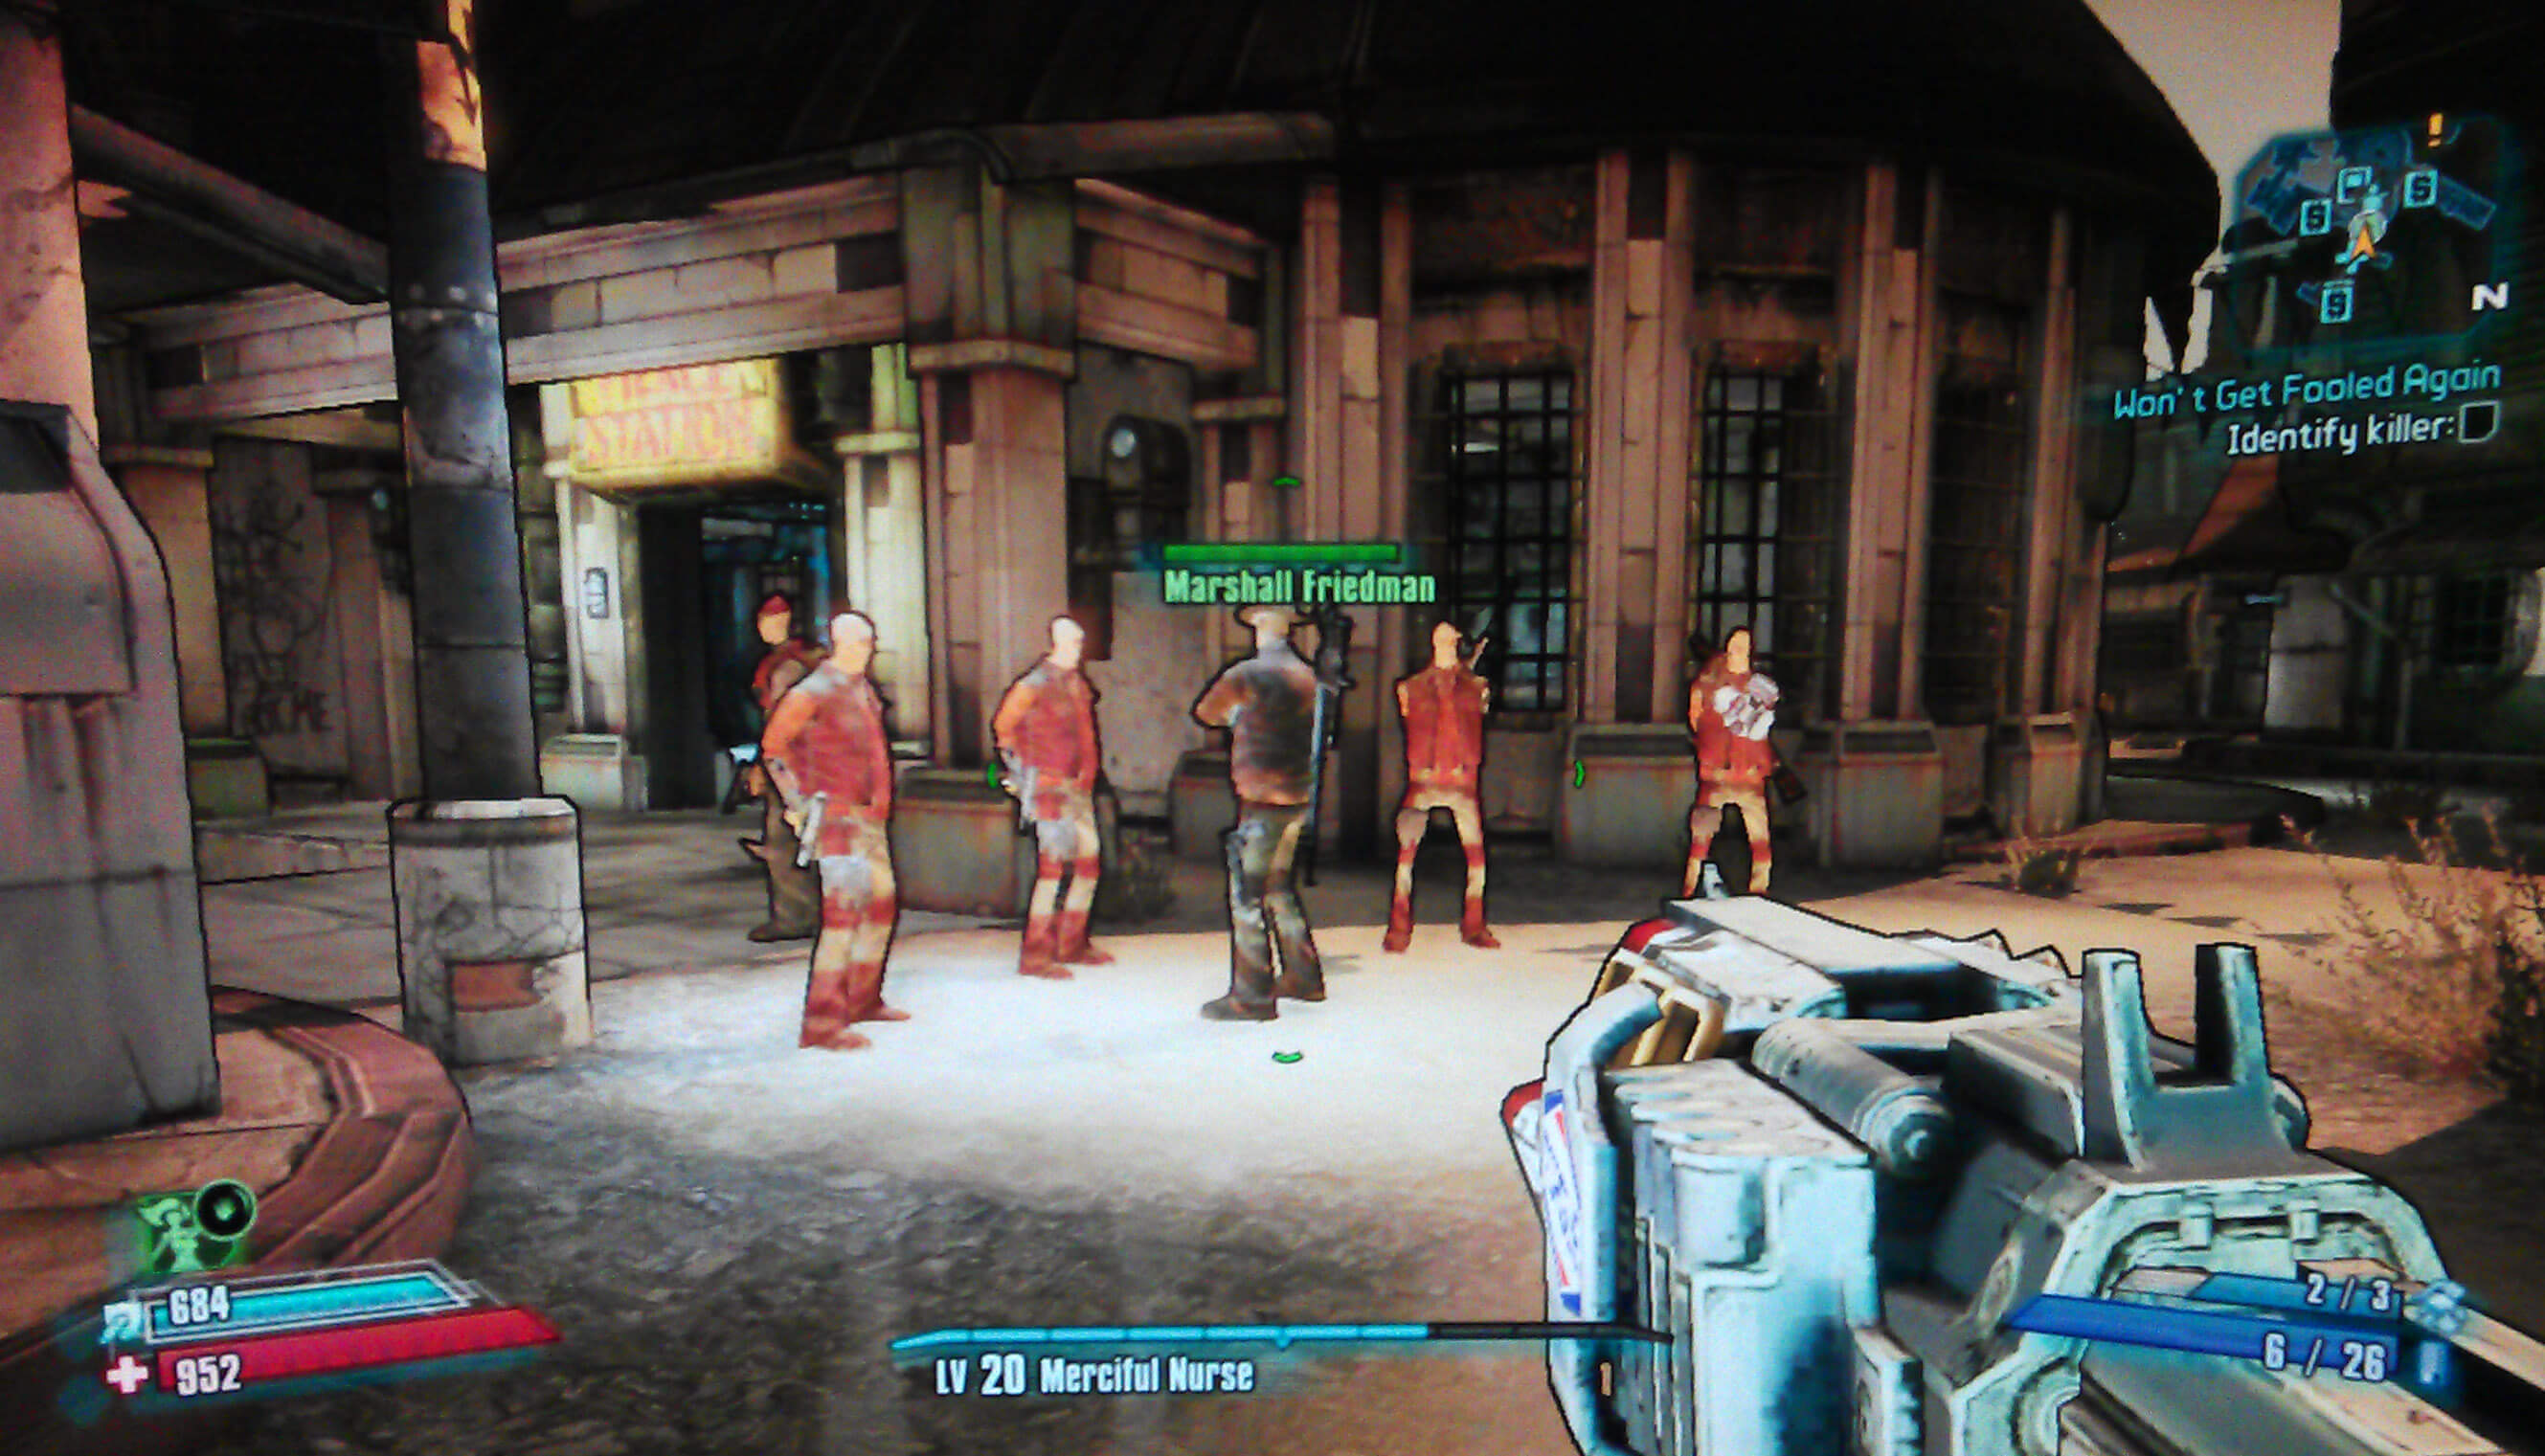 Borderlands 2 Won't Get Fooled Again Walkthrough